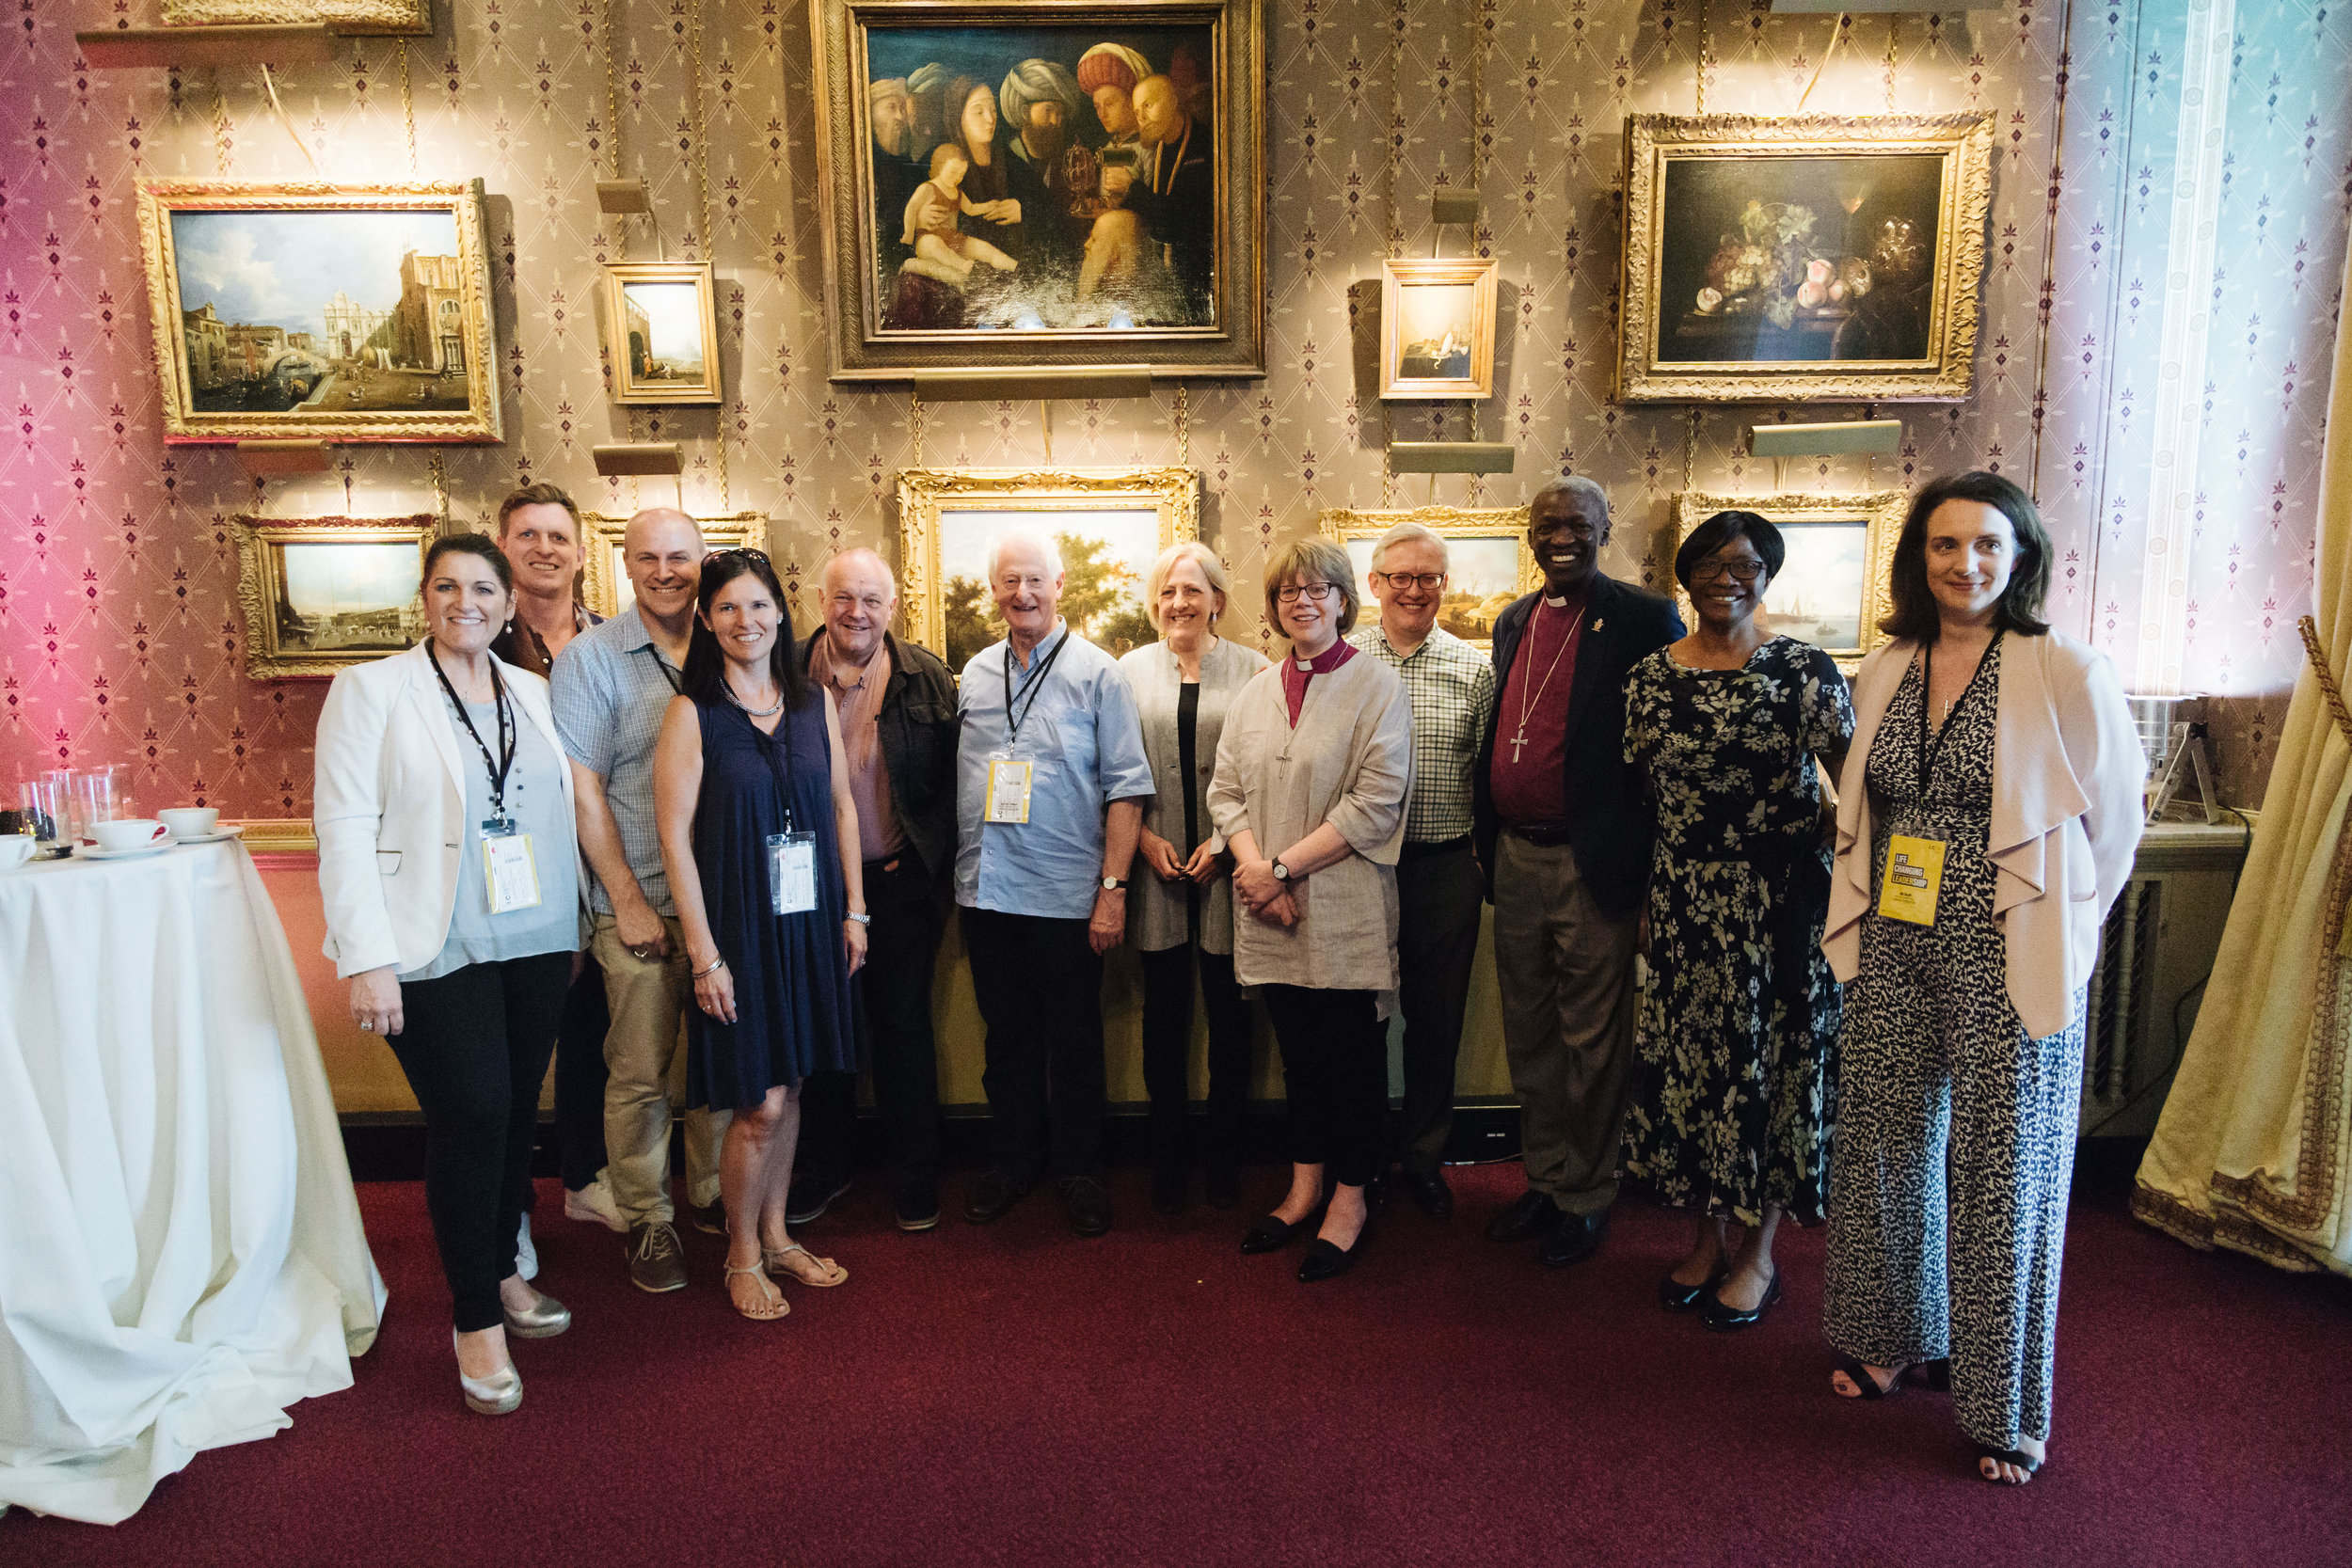 CRT was privileged to have Bishop Sarah Mullally host a Bishops tea at the Royal Albert Hall.